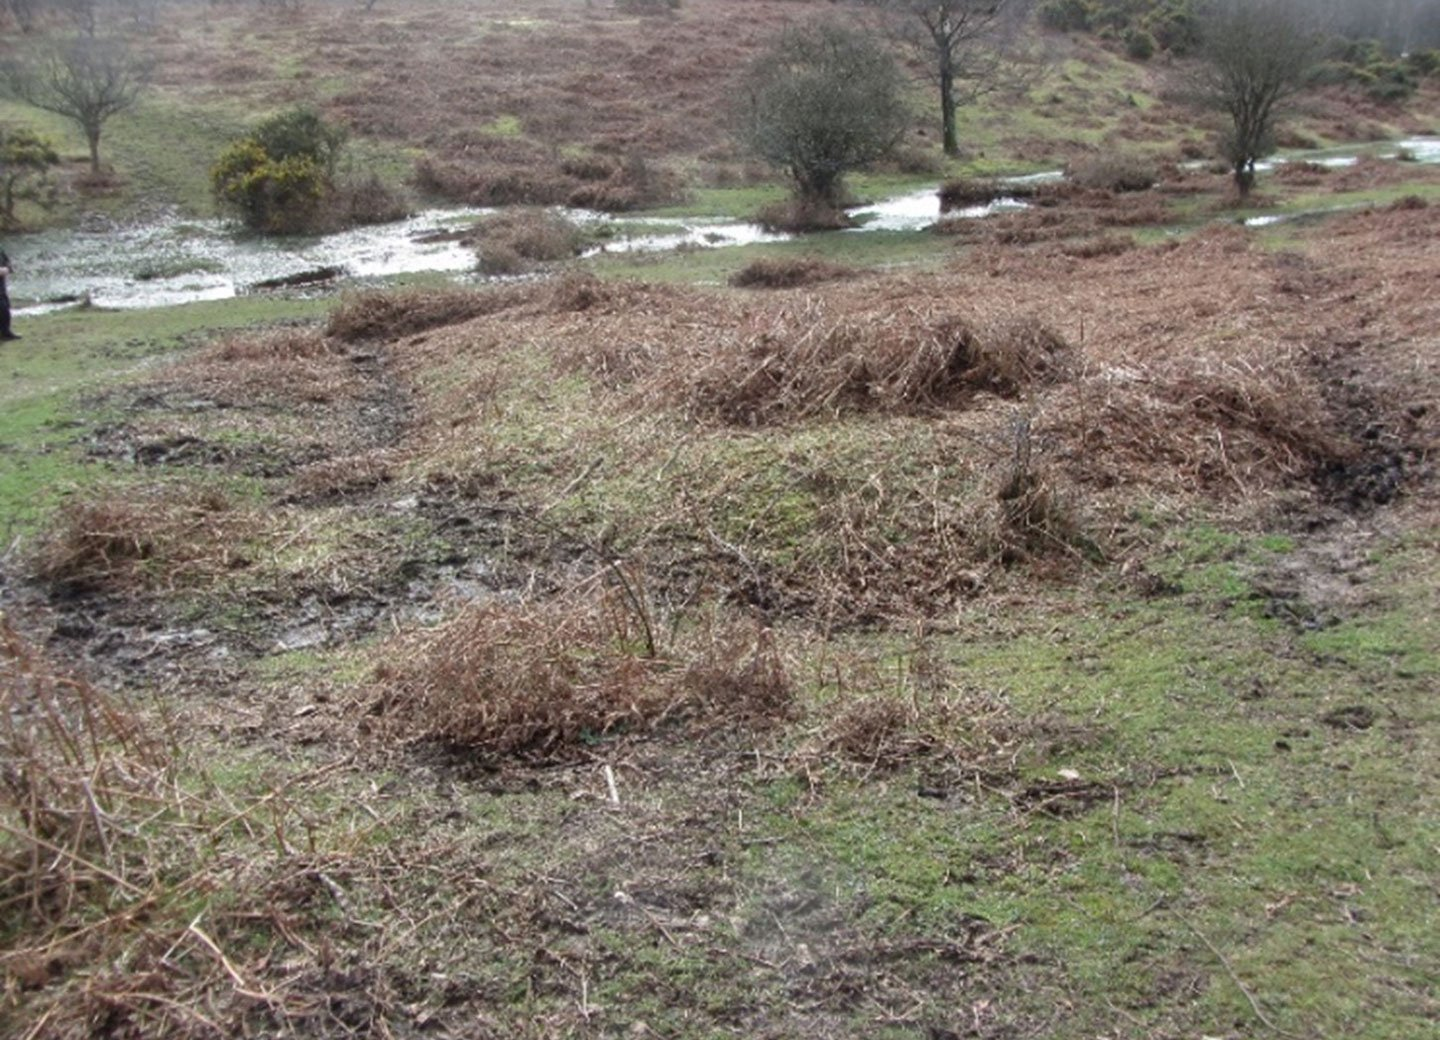 Bank covered in scrub